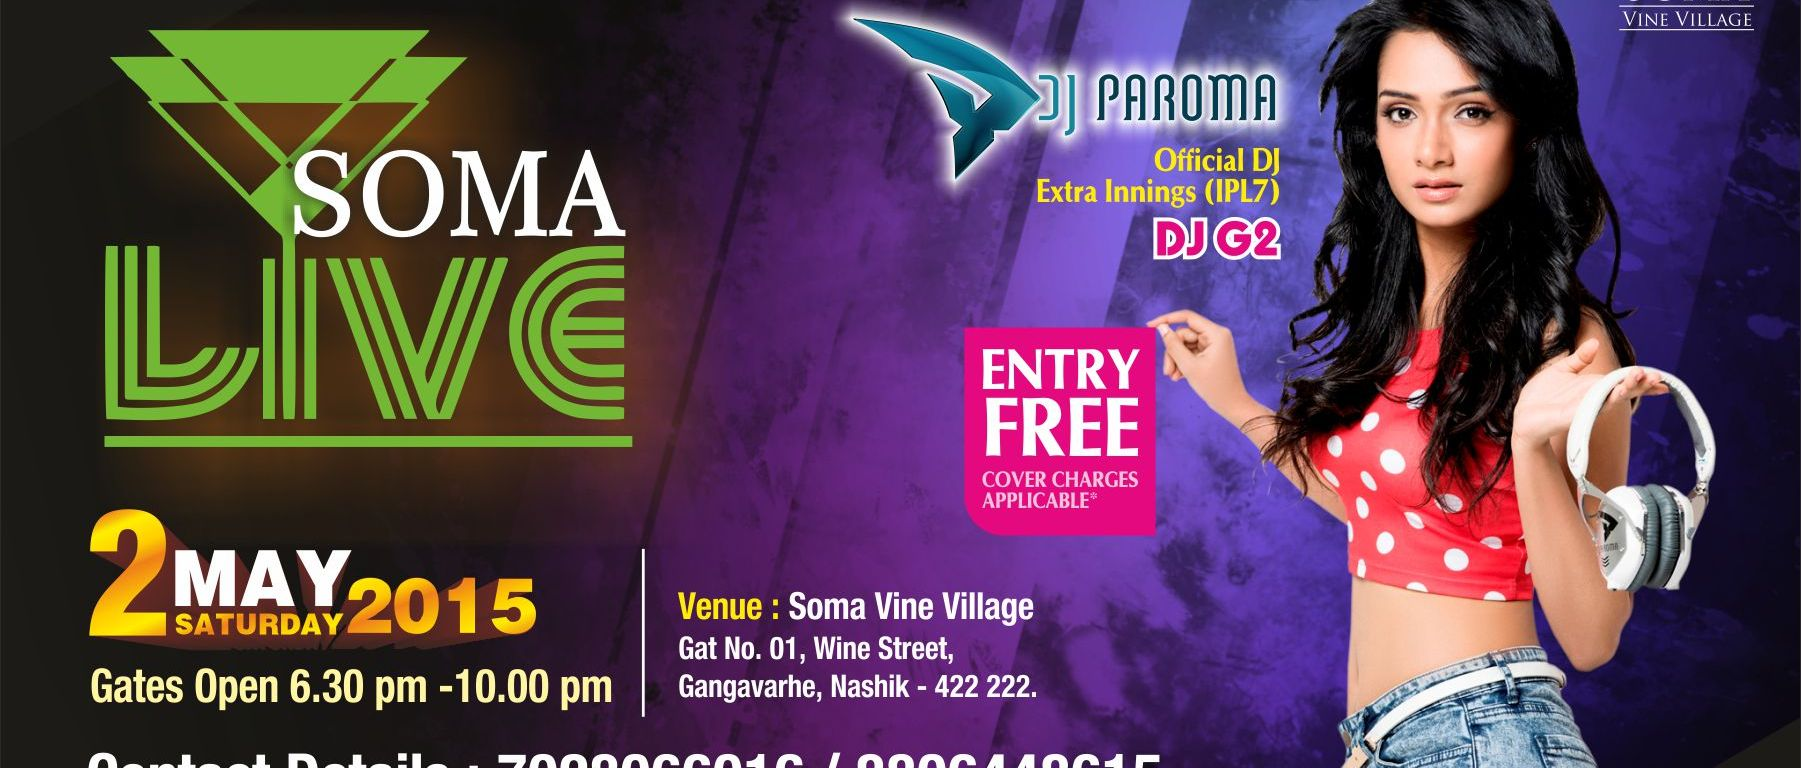 Kickstart your summers with DJ Paroma – Just Nashik